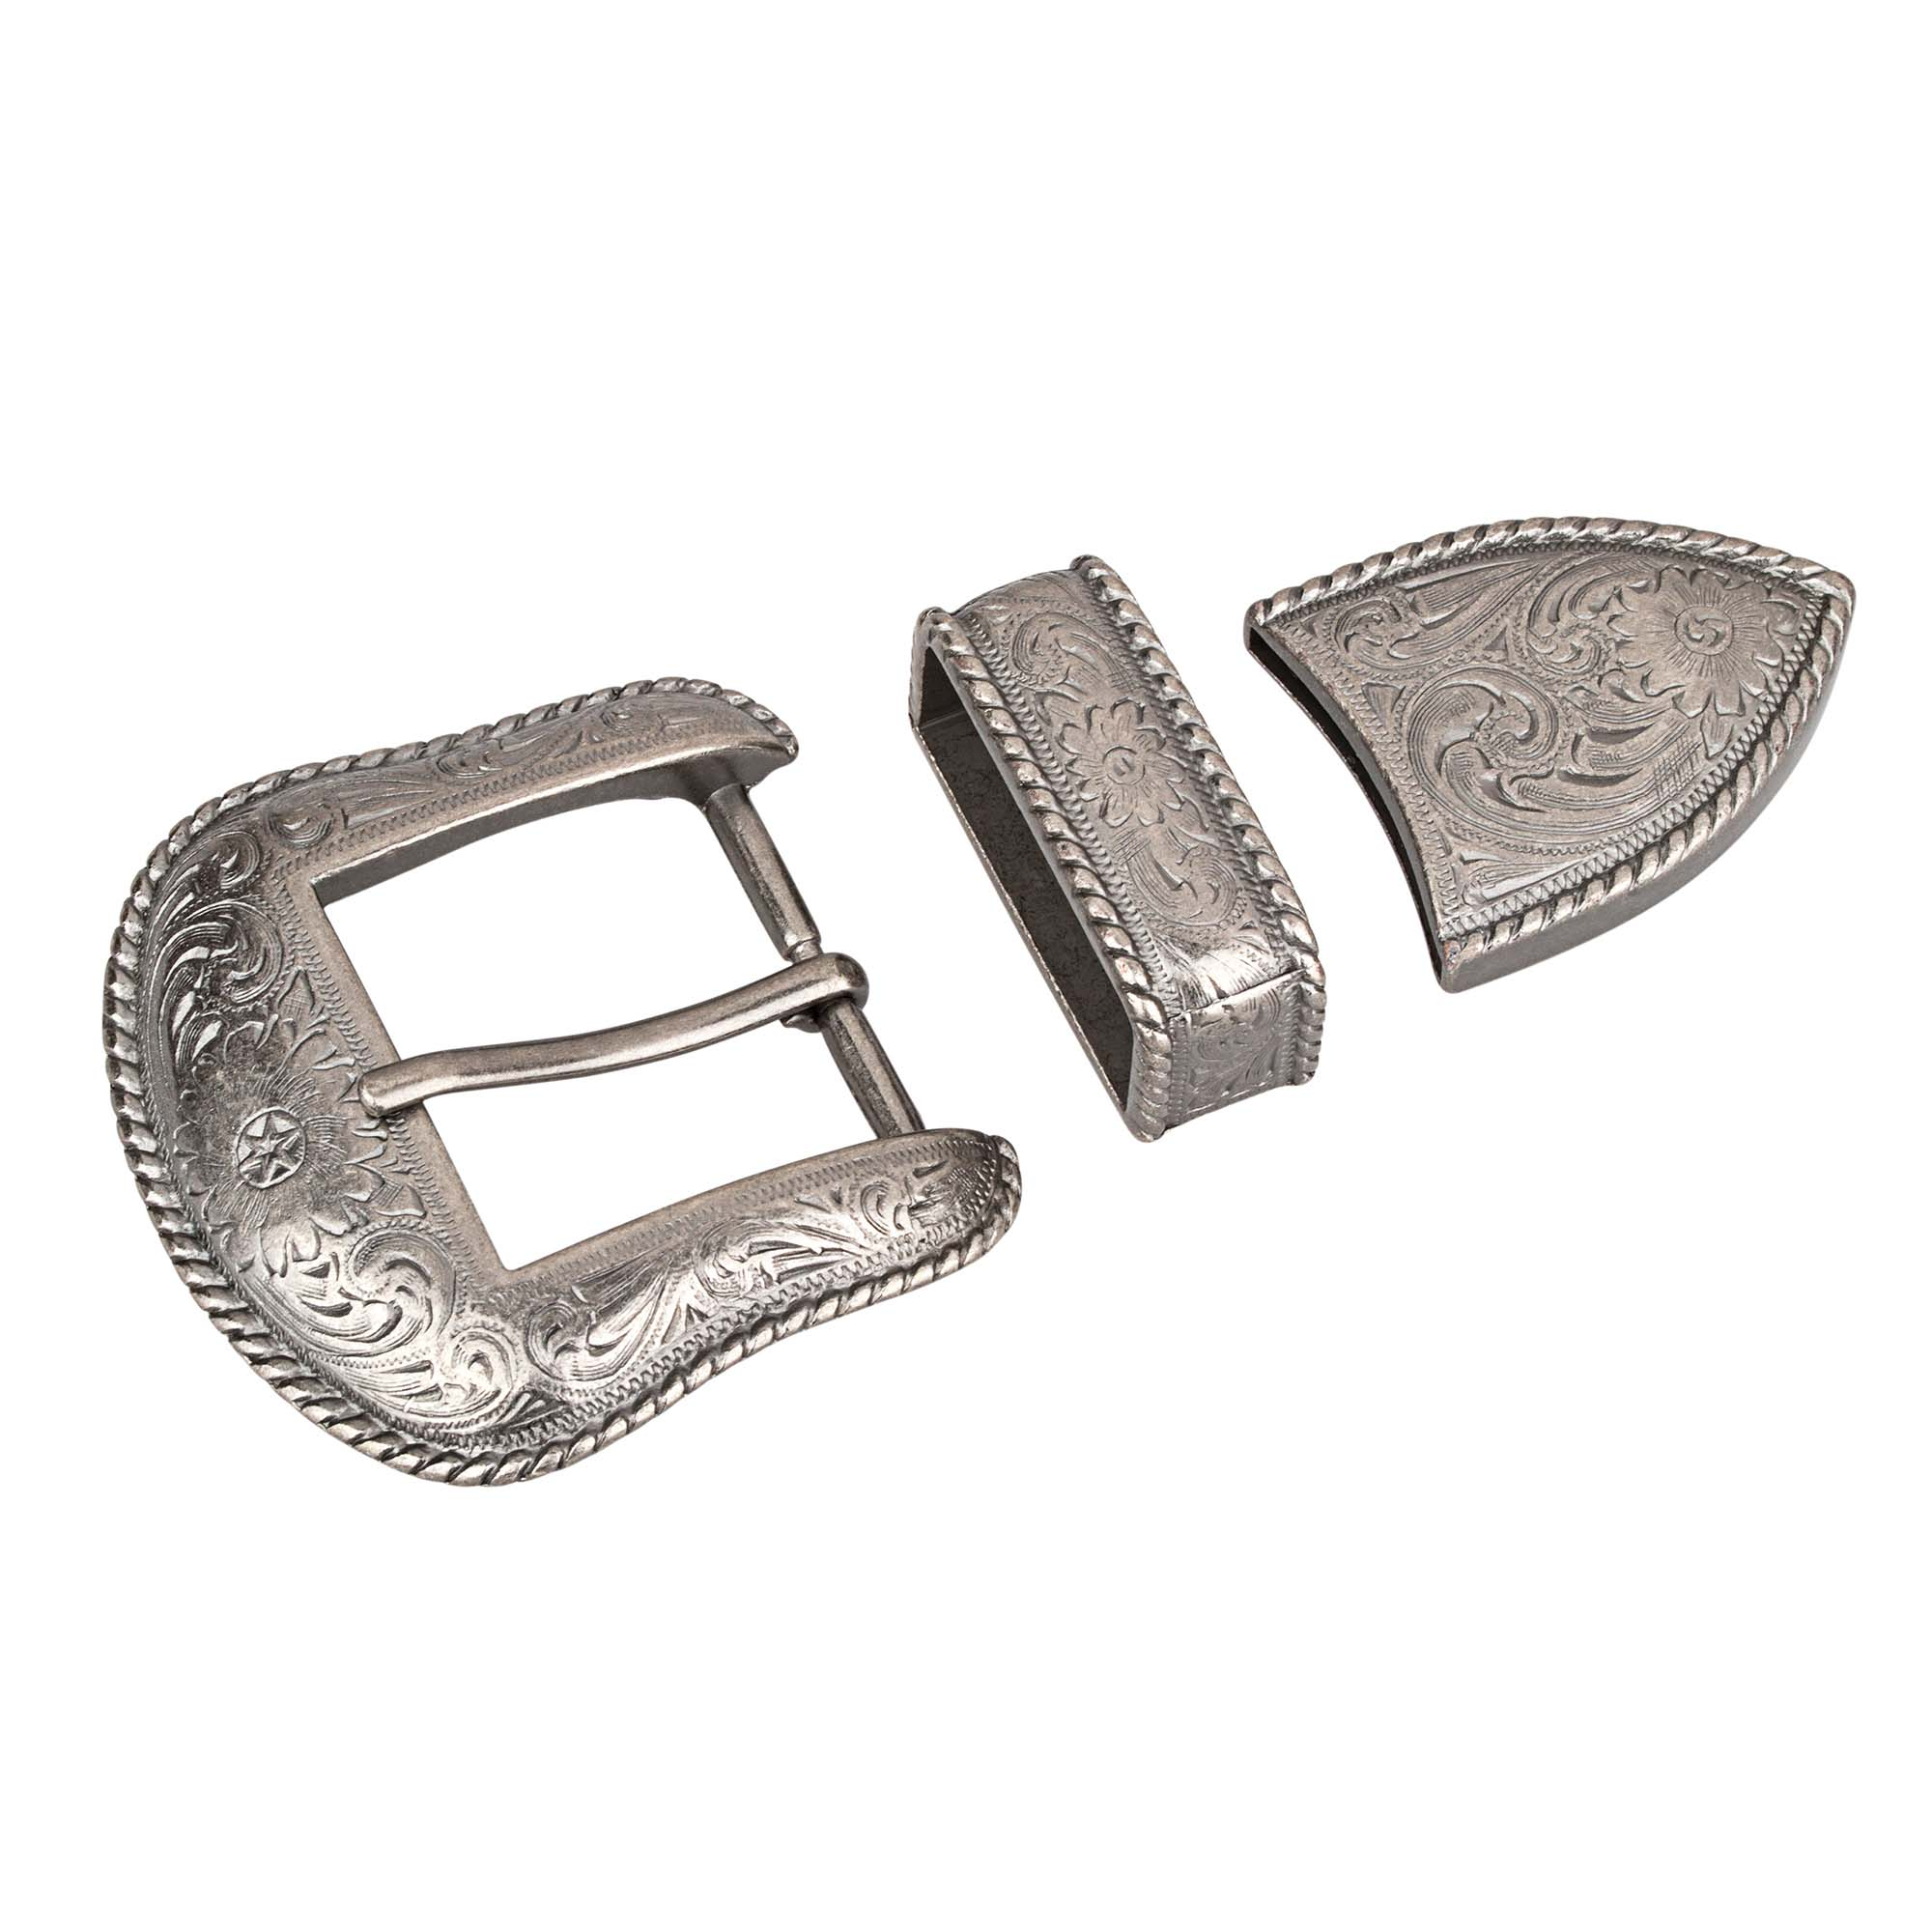 Antique silver Cowboy Belt Buckles for Men Western Cowgirl Belts 3 piece  set Main picture. be2b29896015